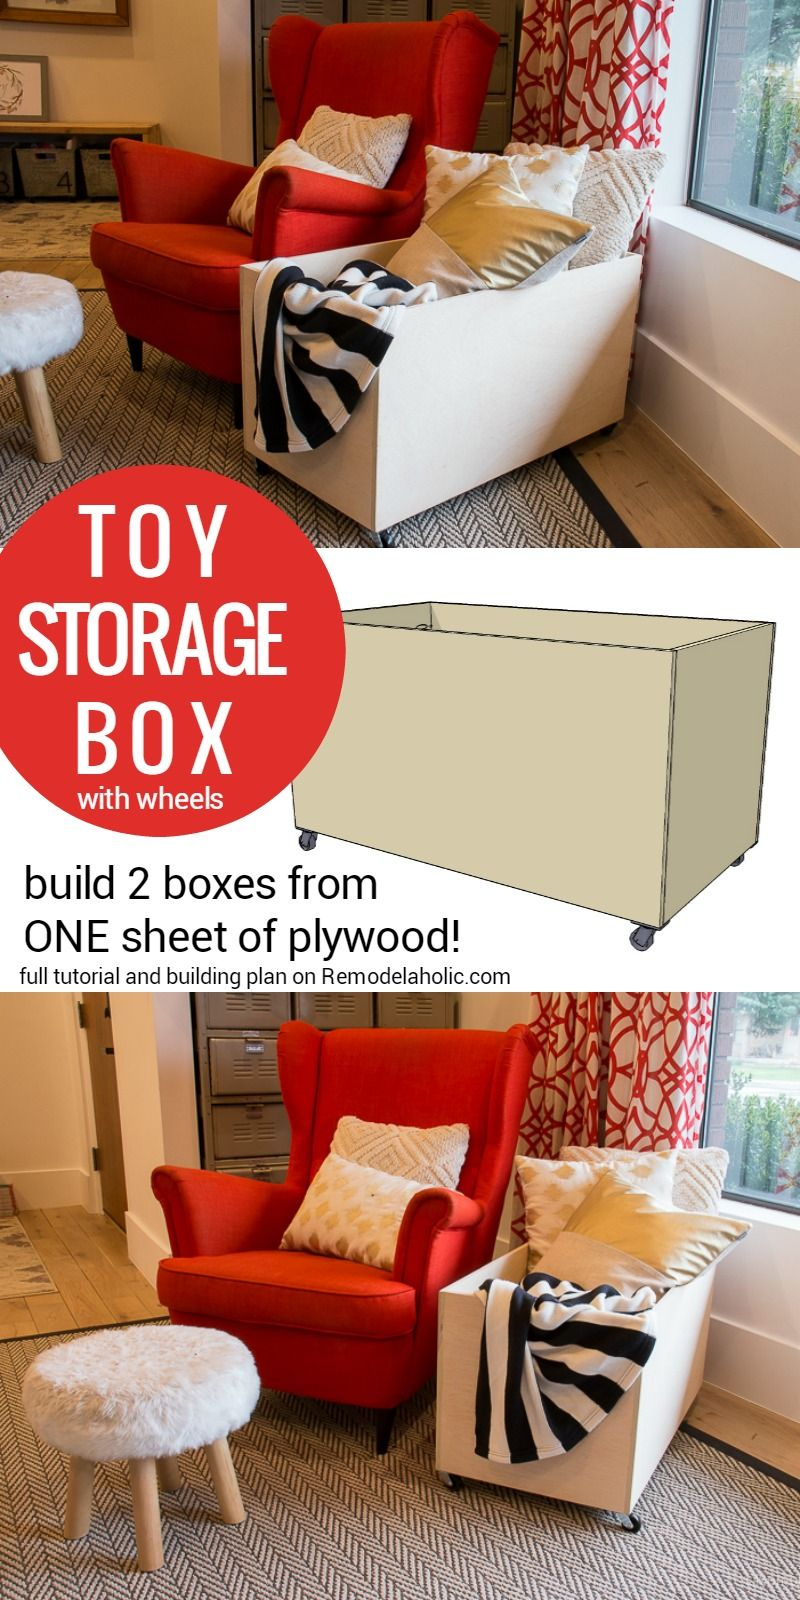 Plywood Rolling Toy Storage Box Remodelaholic Diy Storage Ottoman Diy Storage Ottoman Bench Storage Box On Wheels